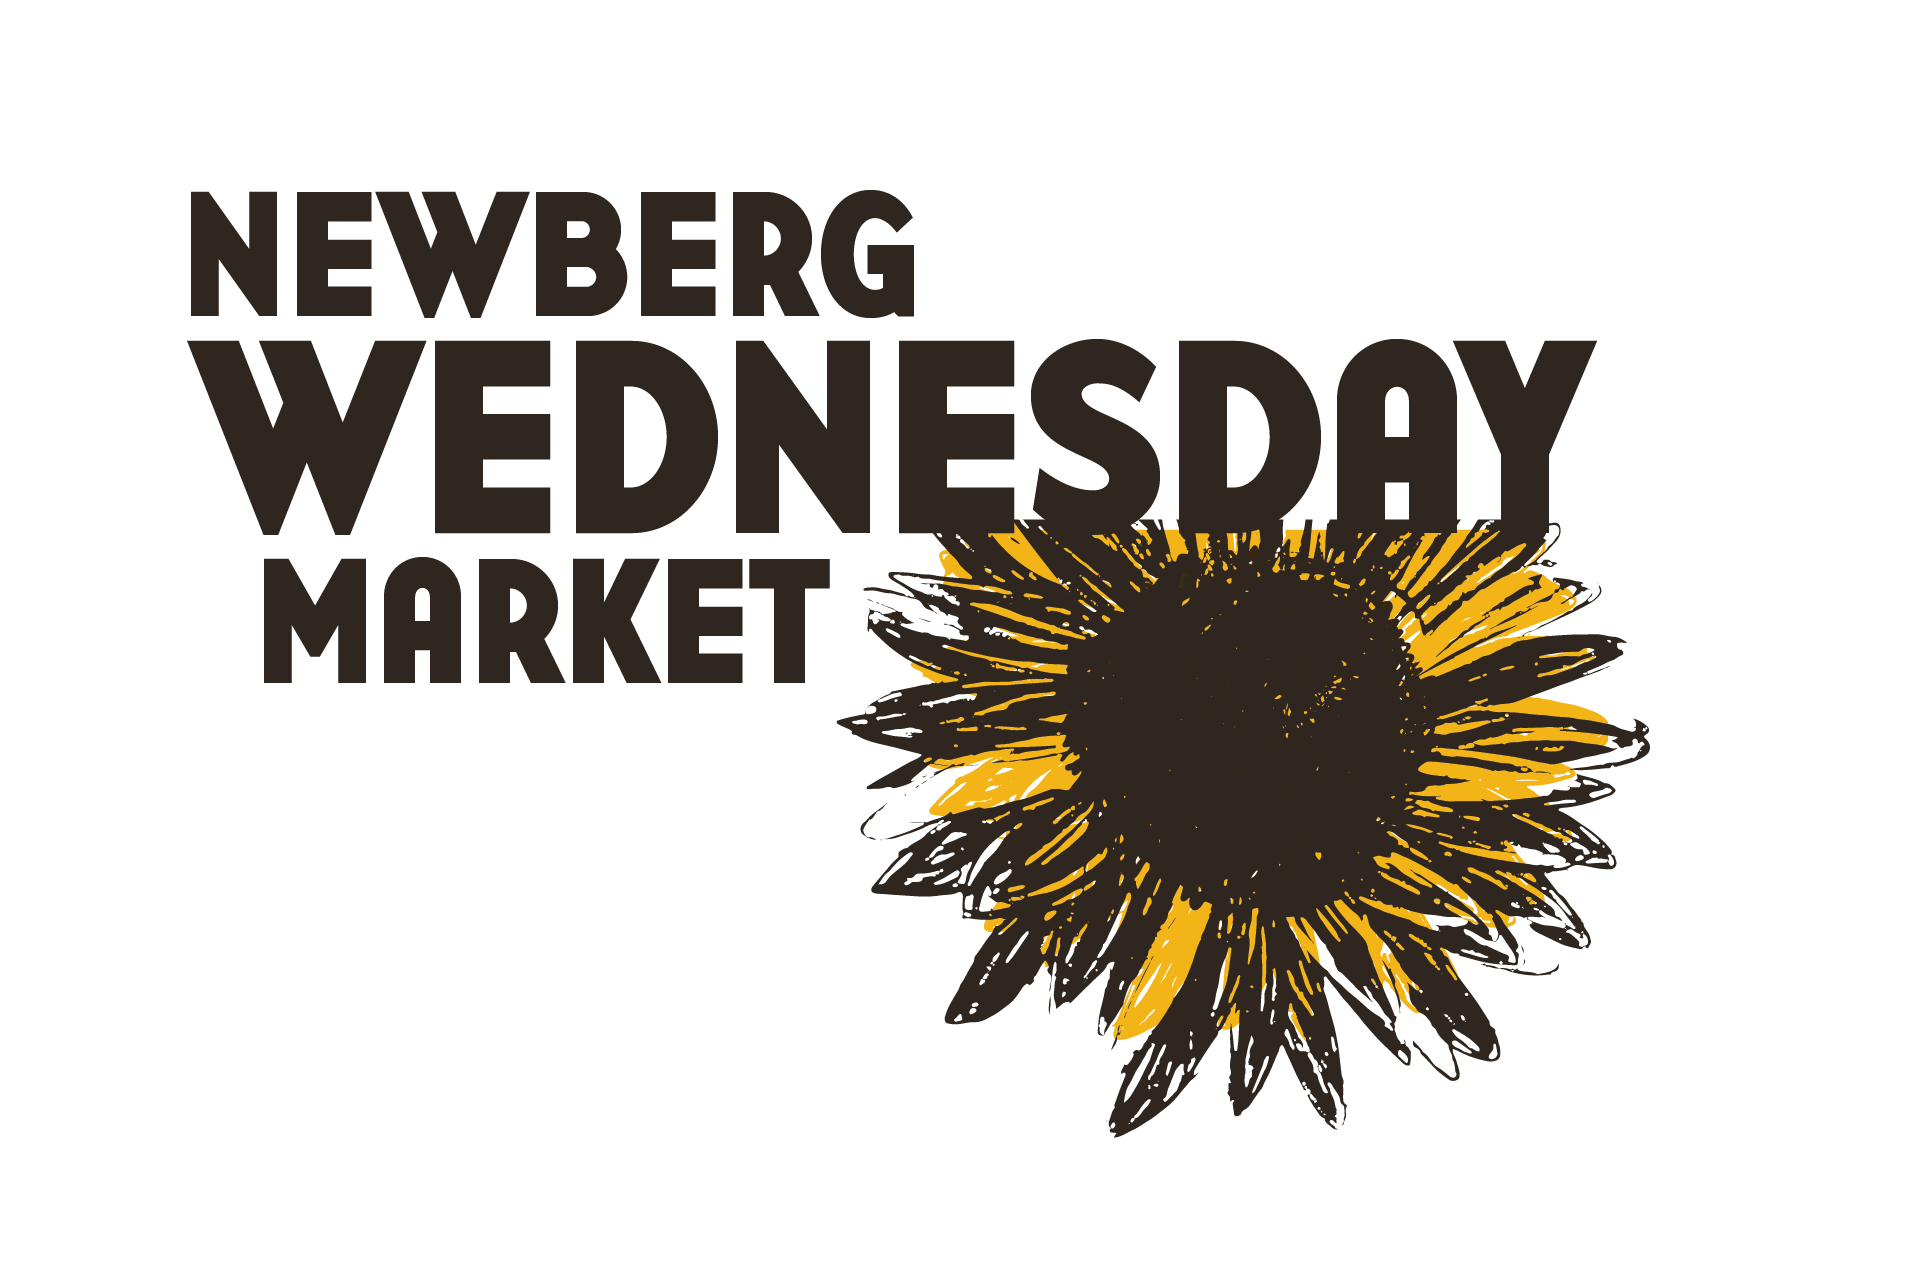 Newberg Wednesday Market